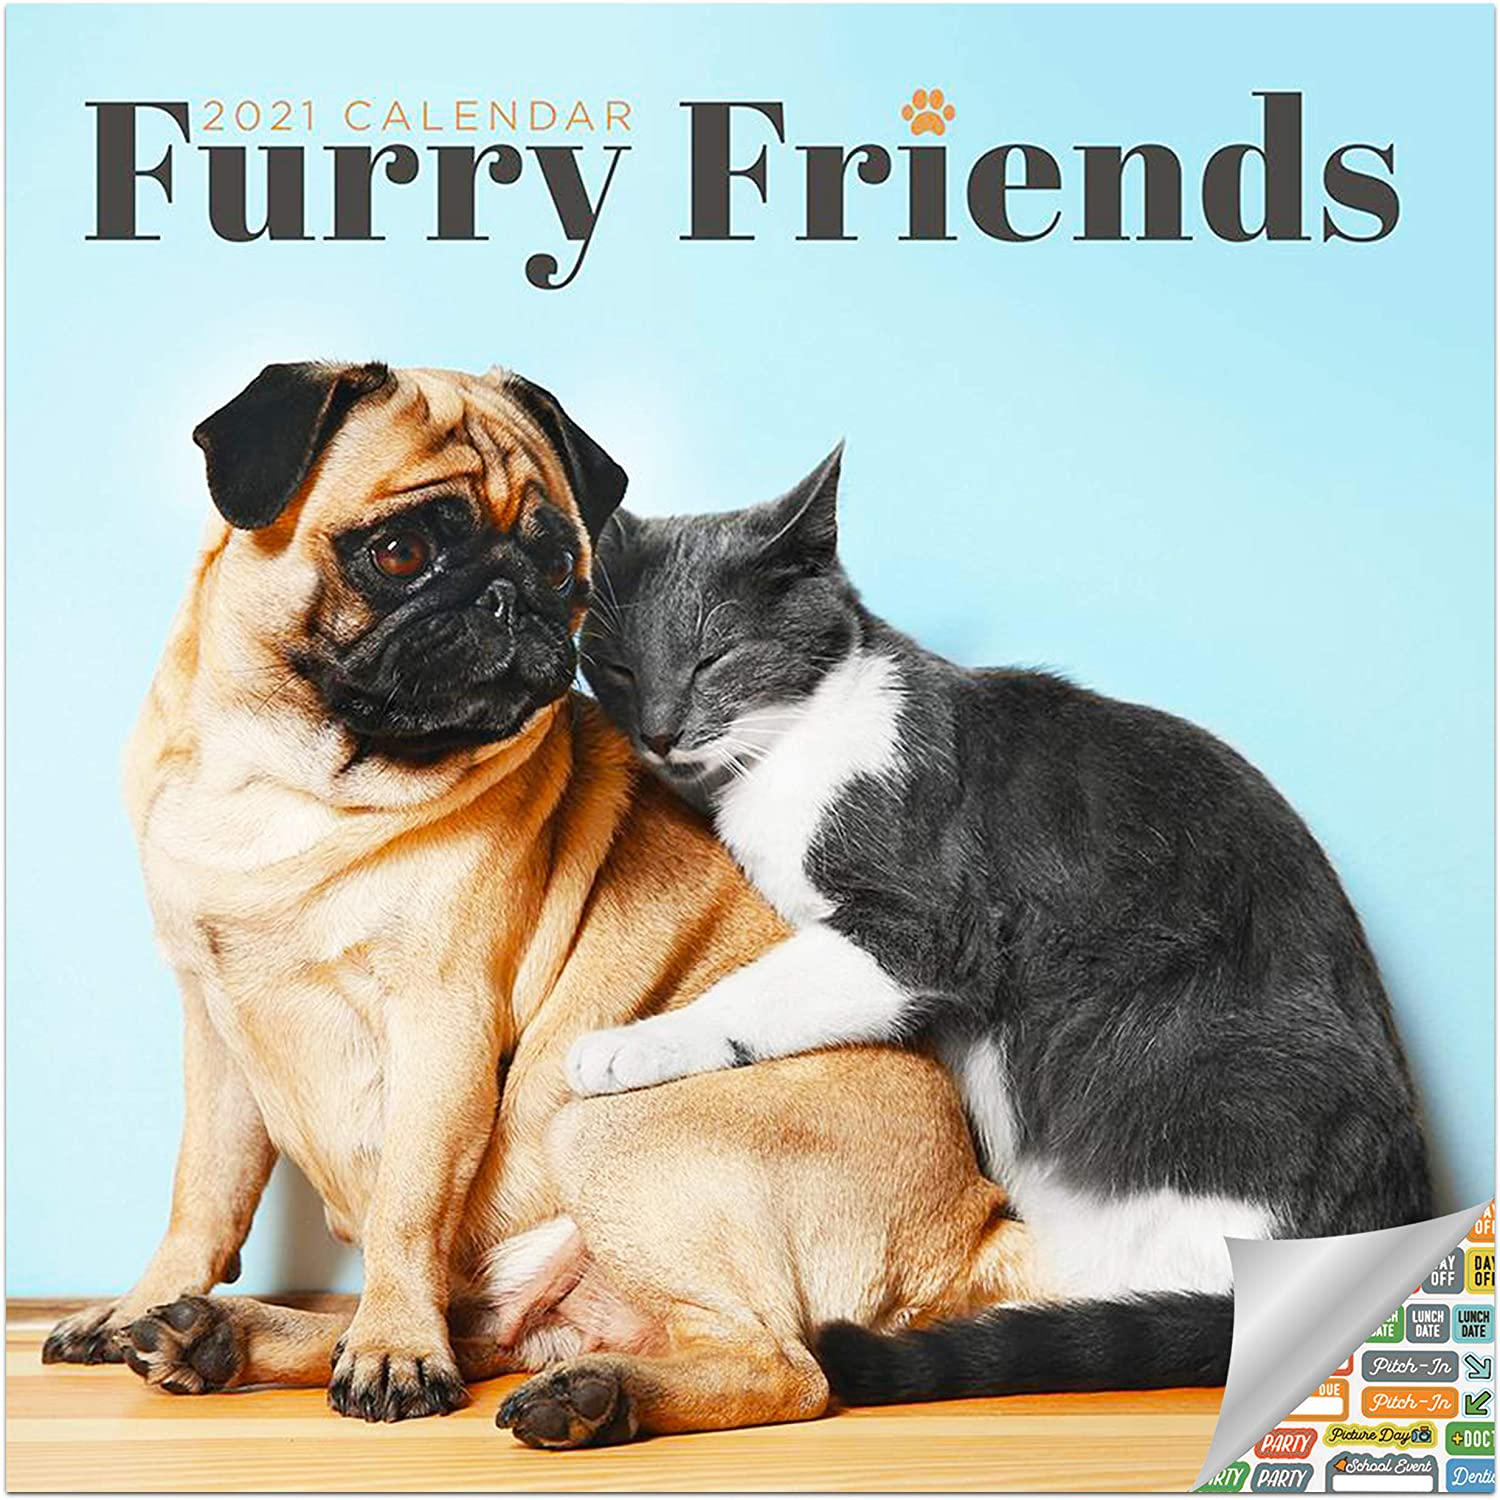 Furry Friends Calendar 2021 Bundle - Deluxe 2021 Dog and Cat Friends Wall Calendar with Over 100 Calendar Stickers